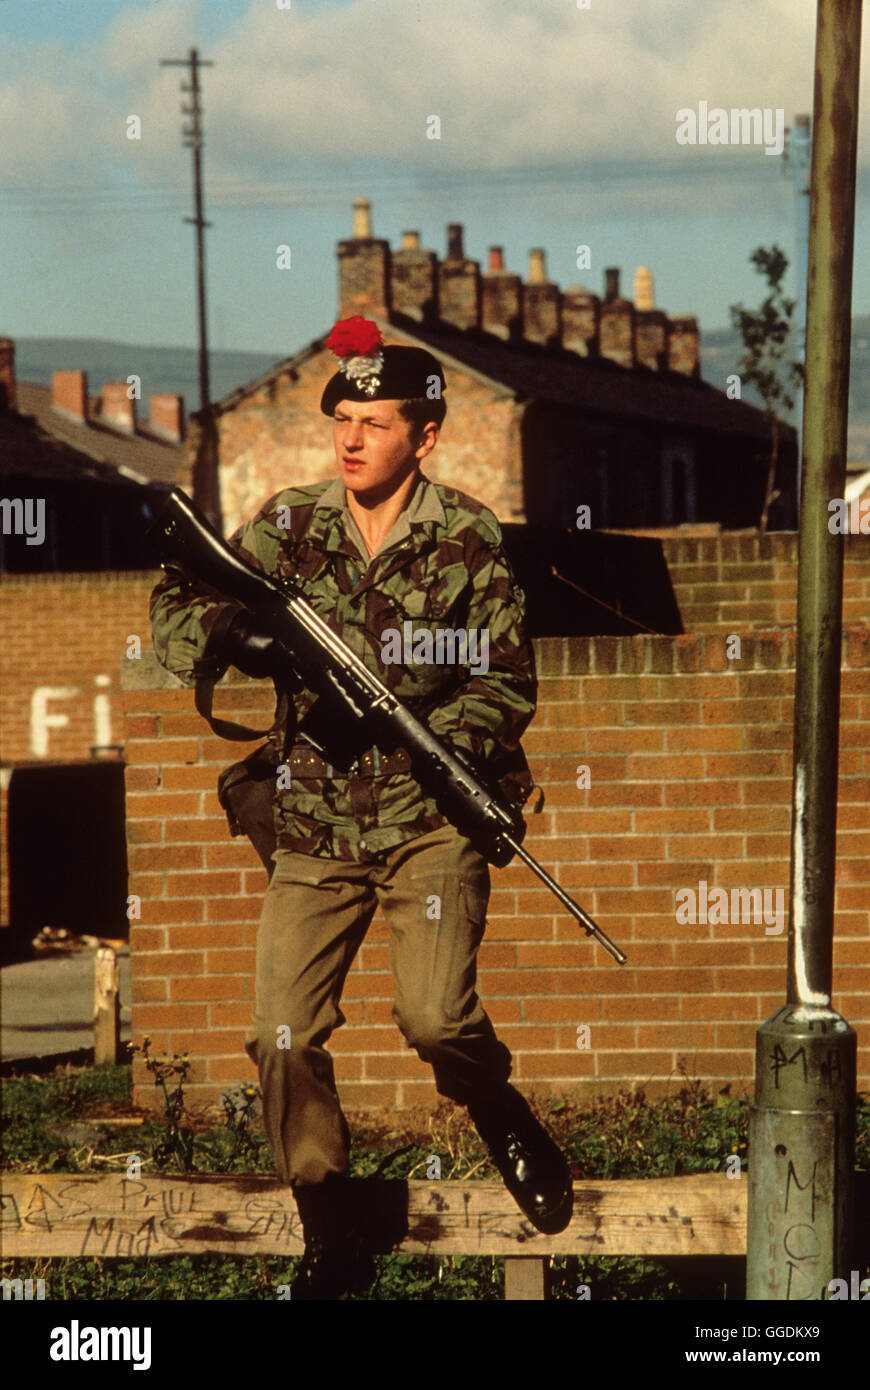 The Troubles Northern Ireland 1980s British soldier on street parole. 1981  80s UK HOMER SYKES - Stock Image